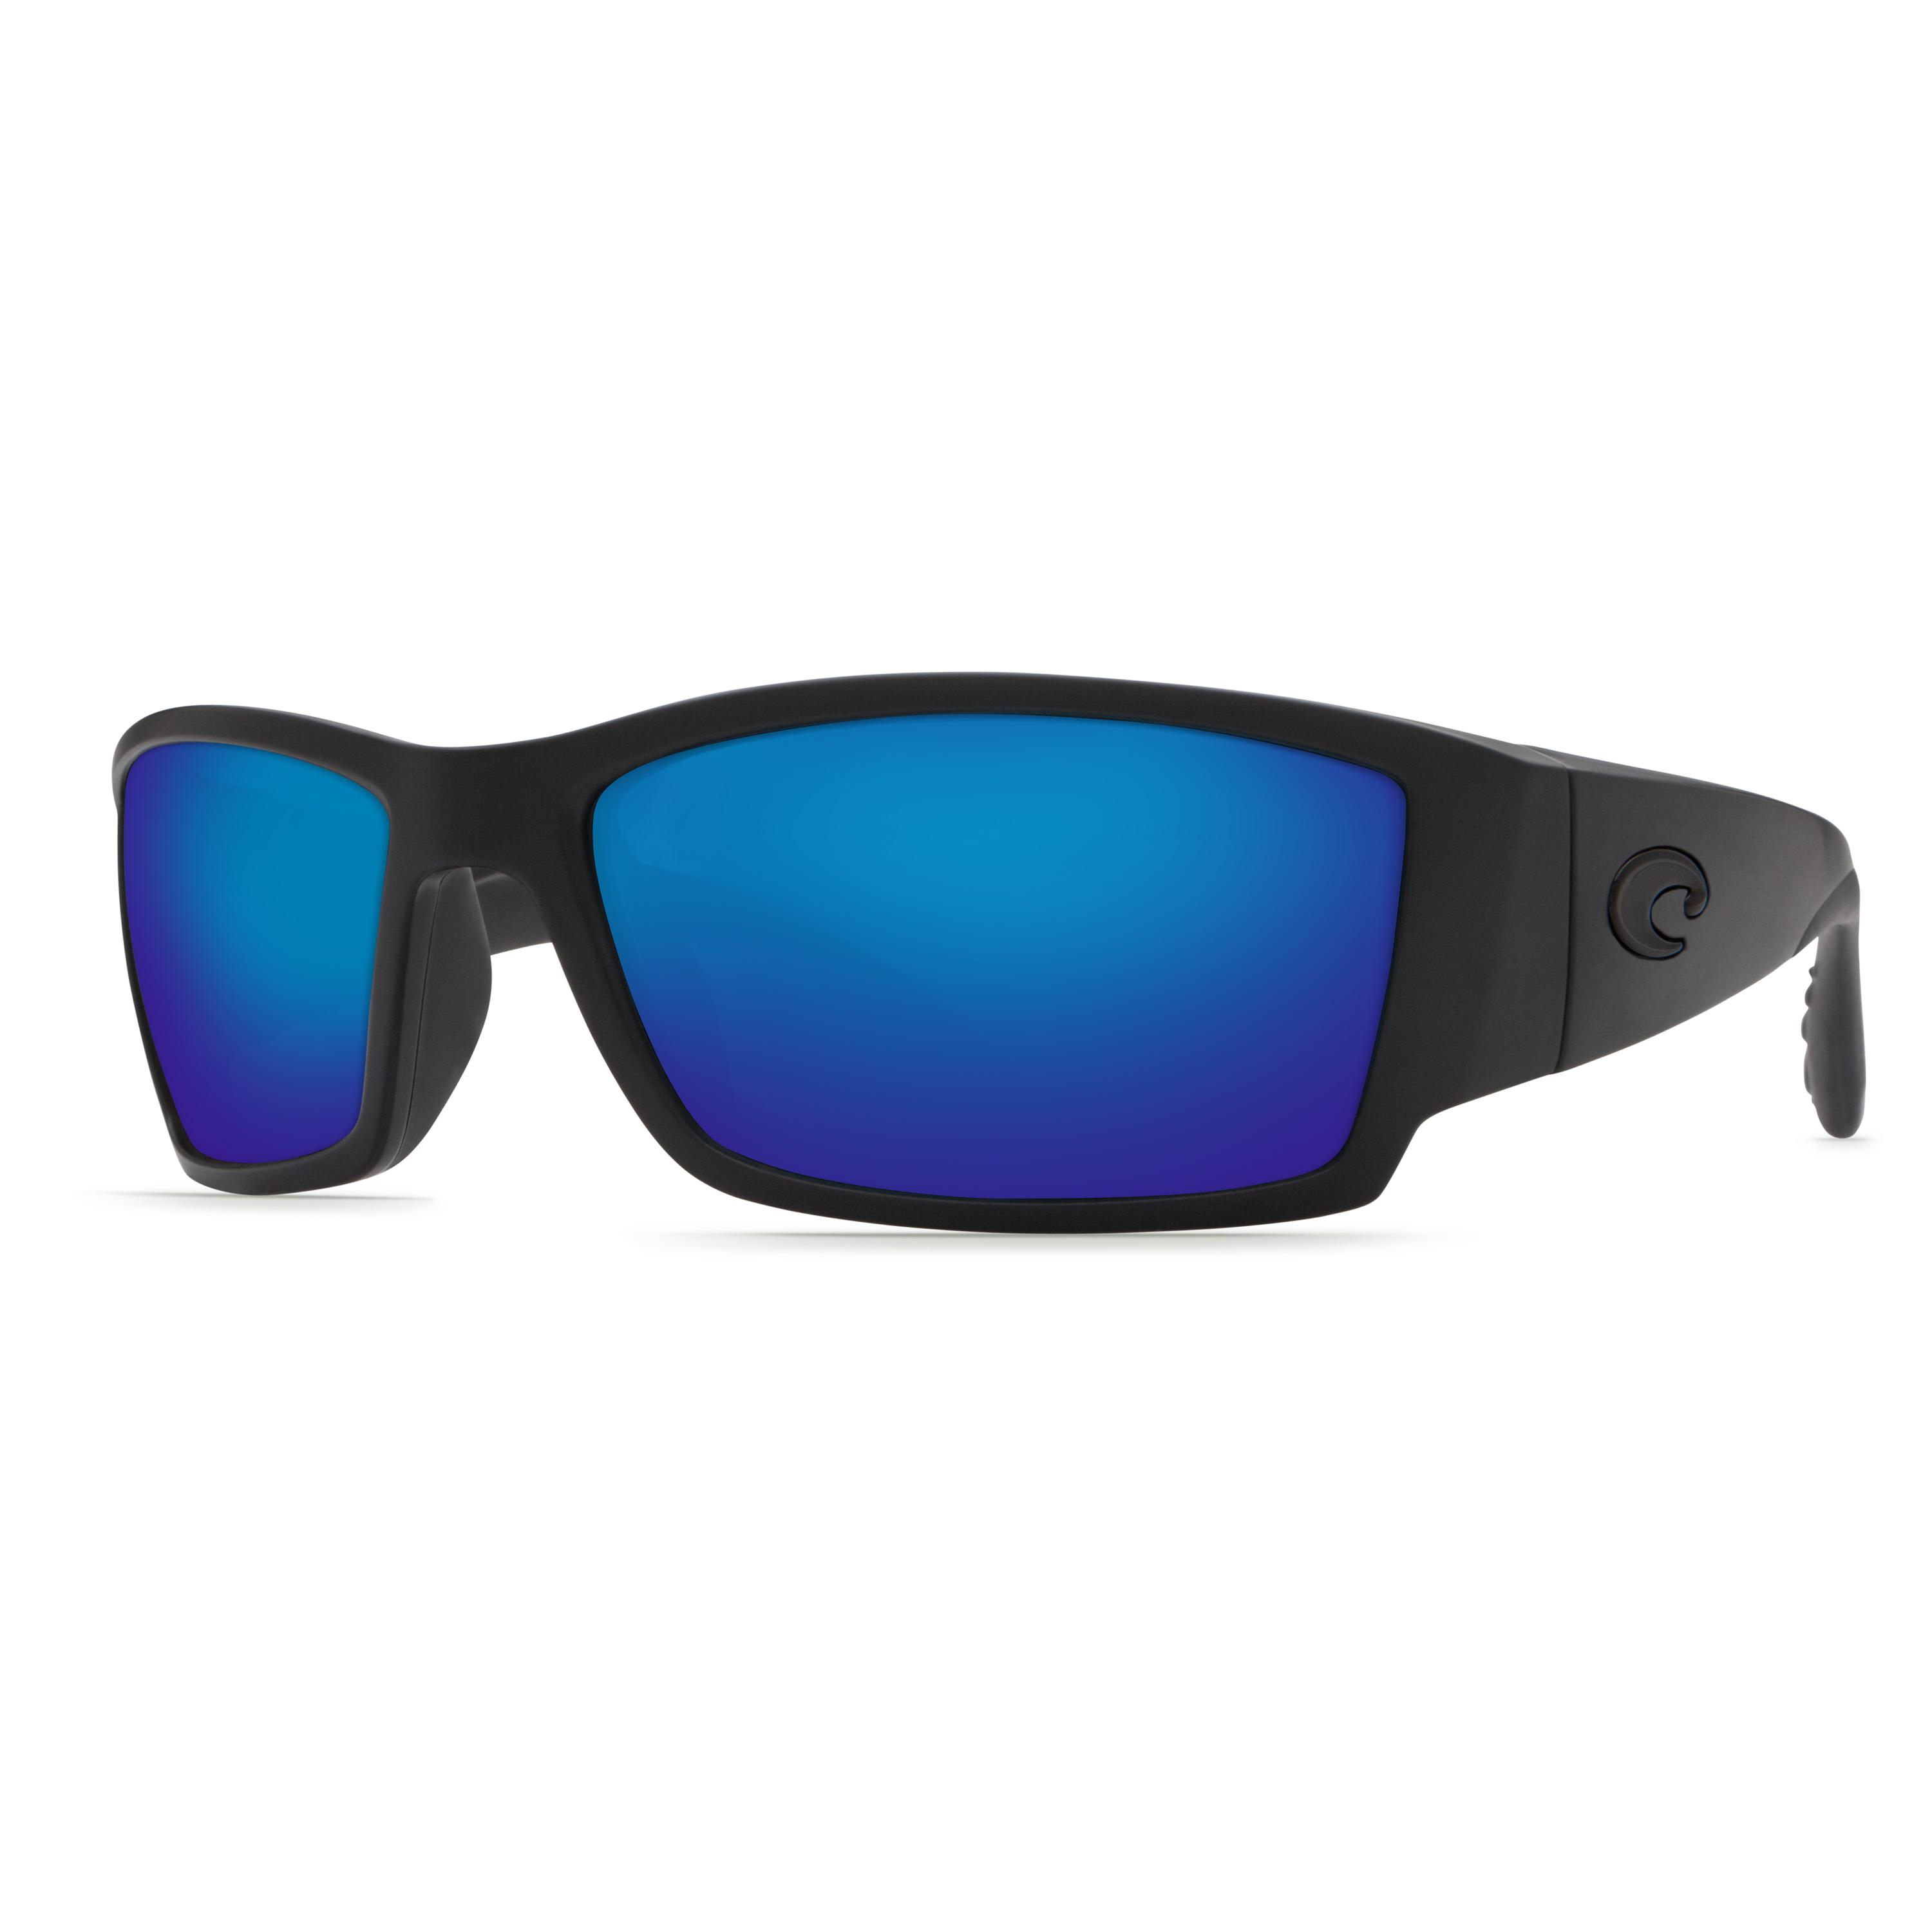 f114d3329303e Amazon.com  Costa Del Mar Corbina Sunglasses  Sports   Outdoors